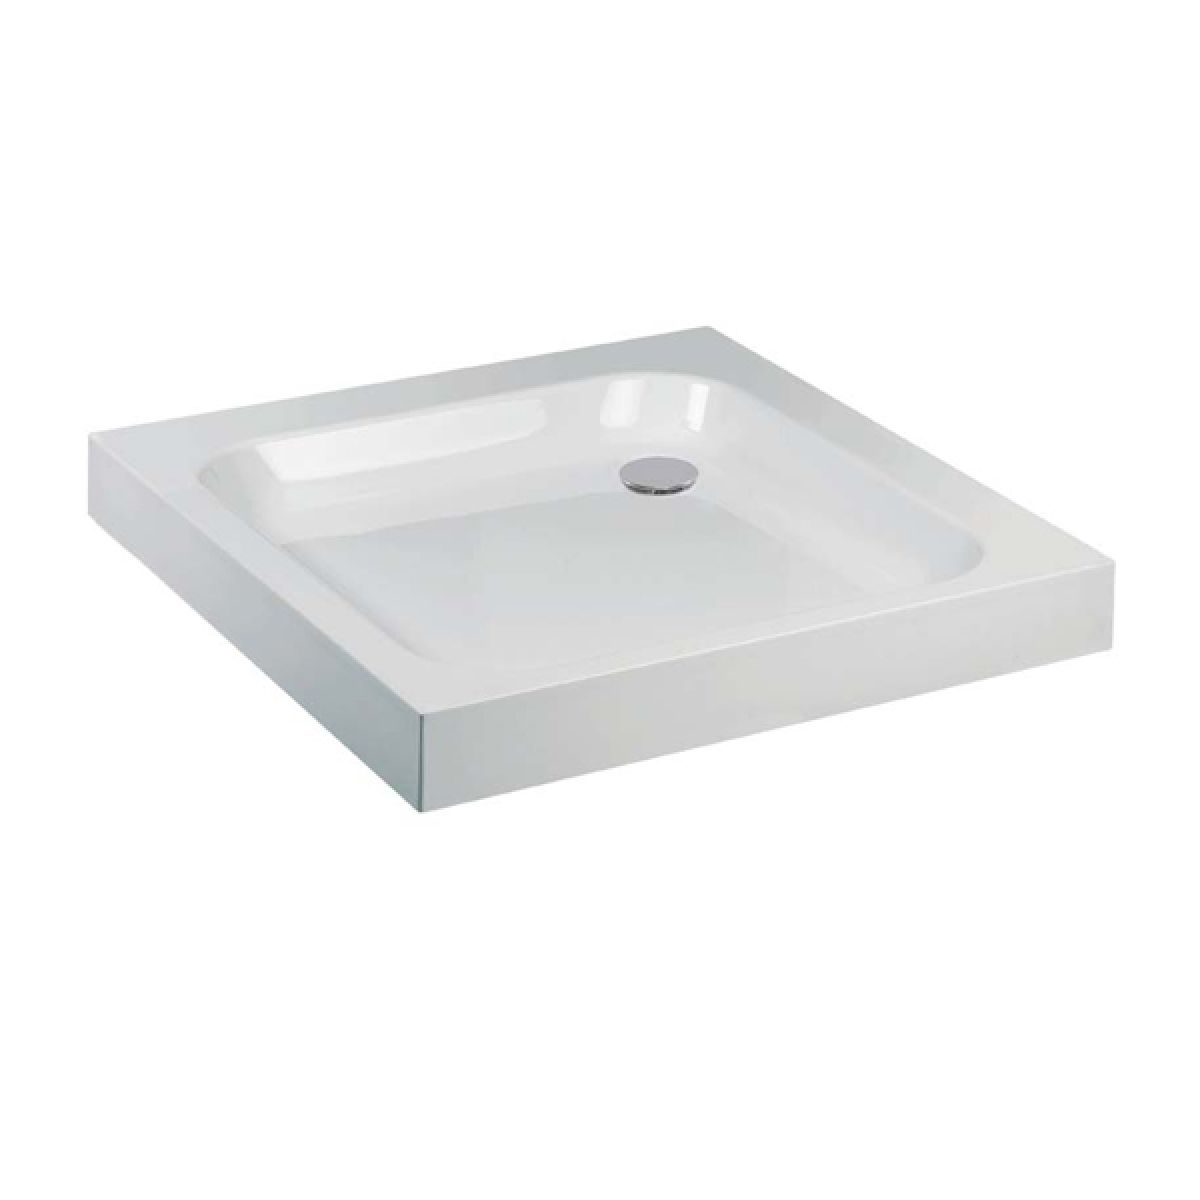 Frontline Standard Square Shower Tray 700 x 700mm